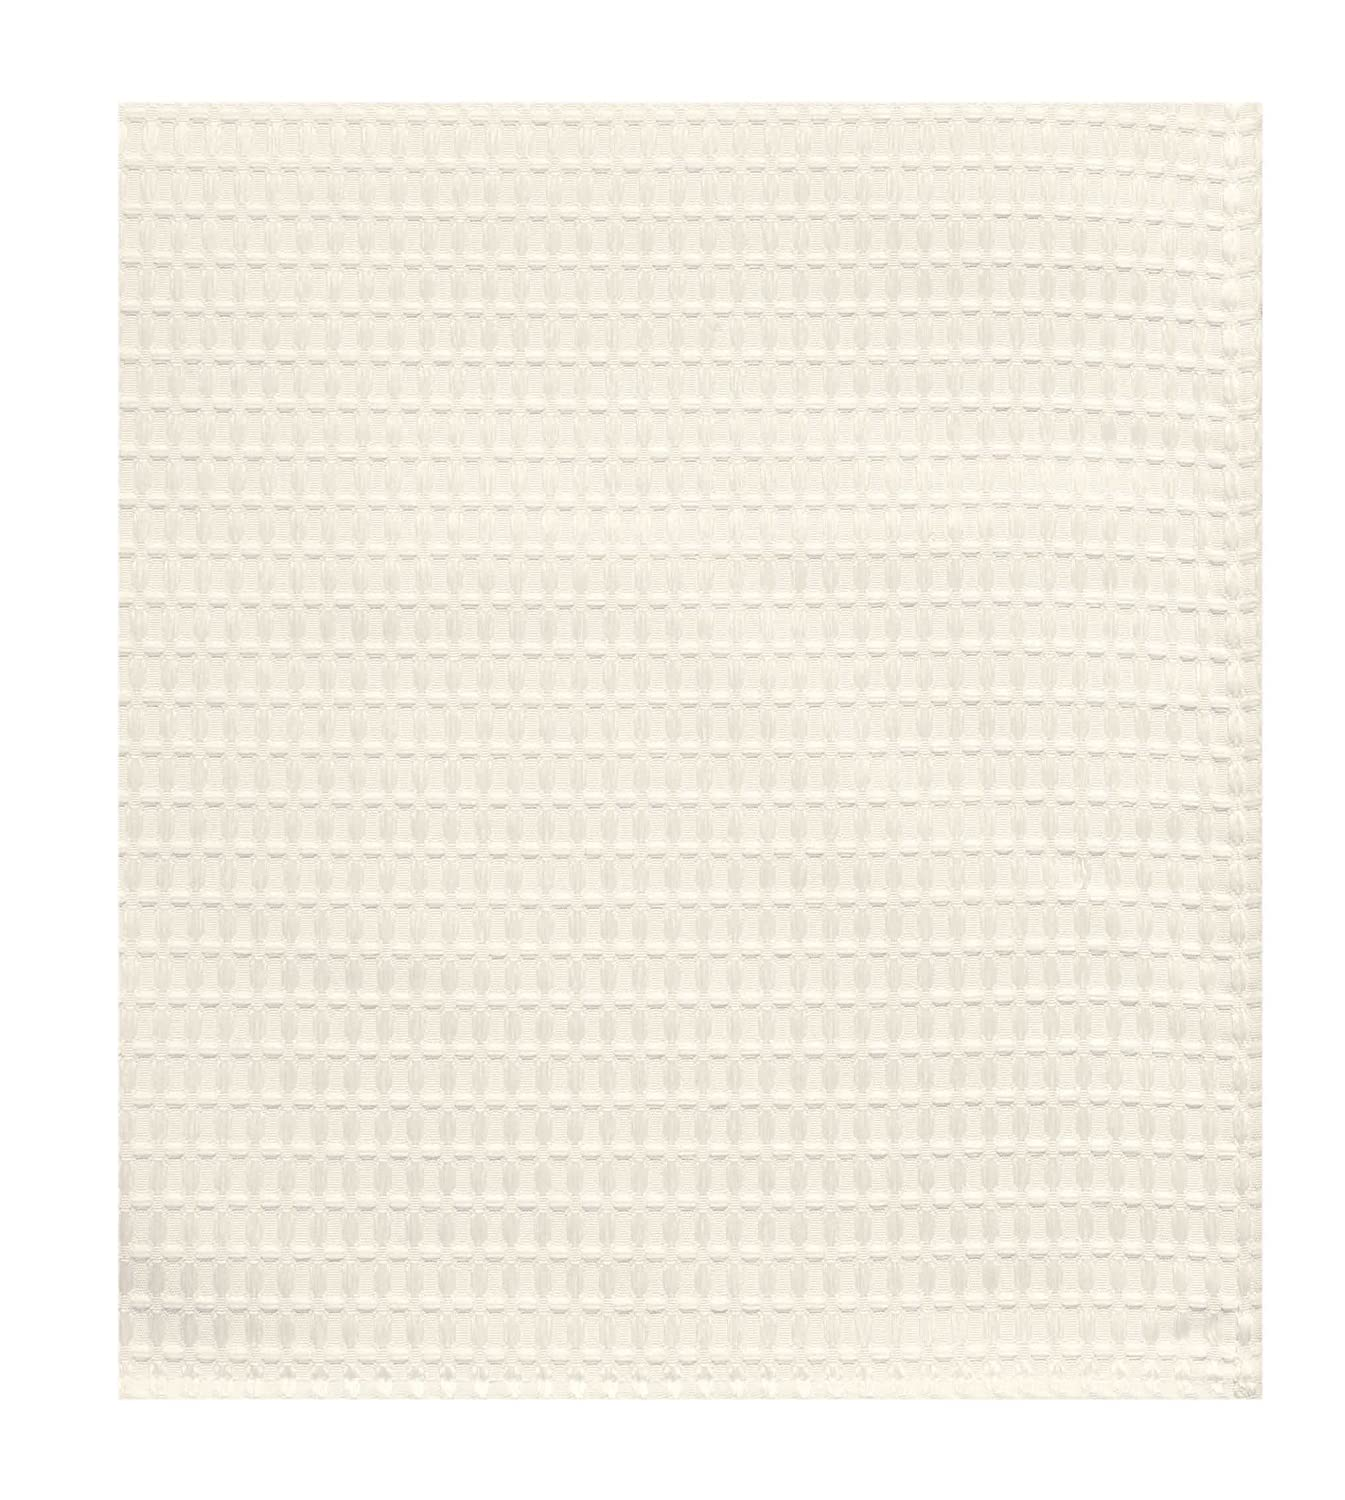 Harman Hotel Lux Shower Curtain Polyester Natural